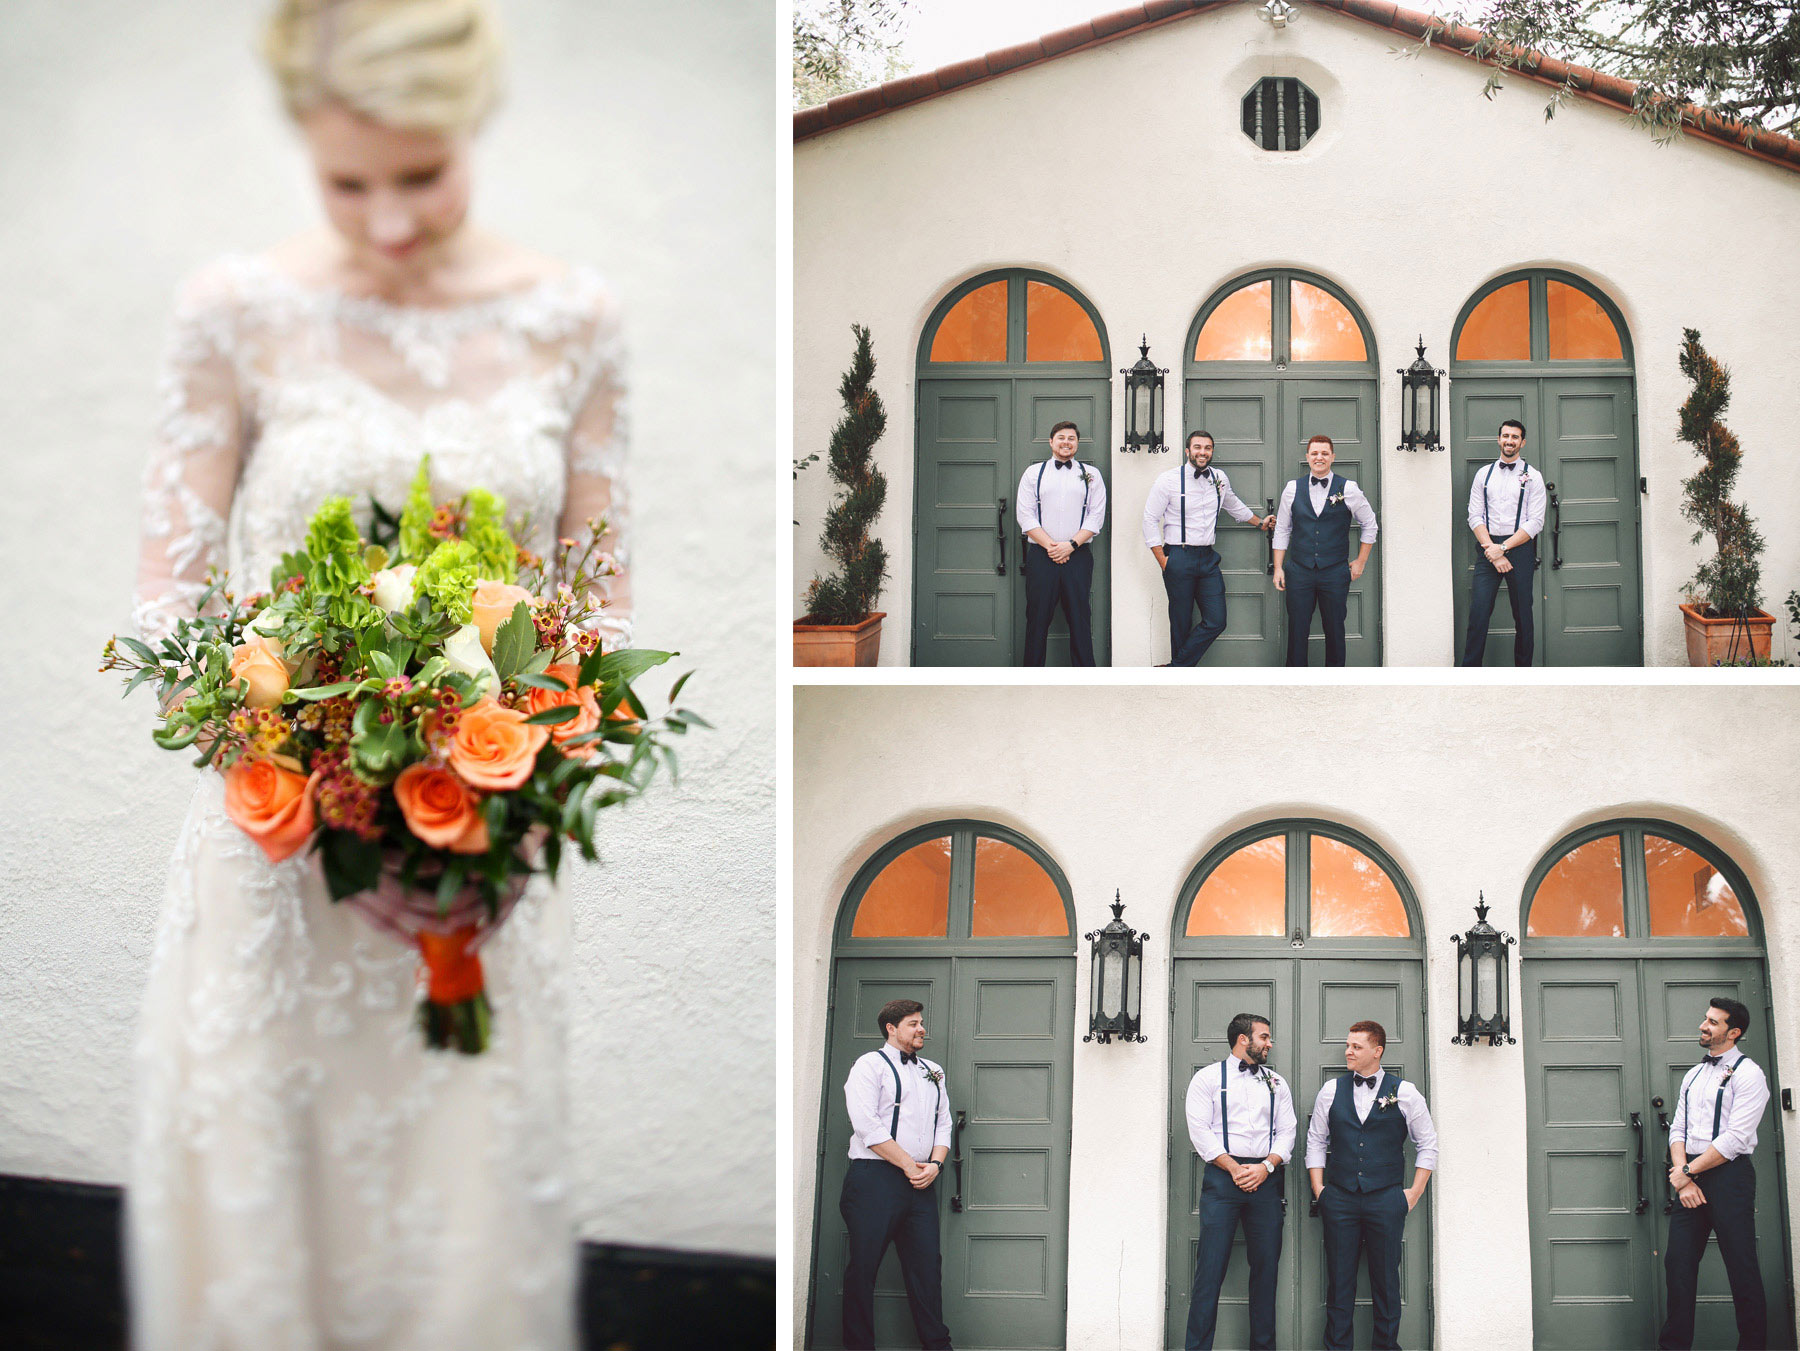 03-La-Canada-Flintridge-California-Wedding-Photographer-by-Andrew-Vick-Photography-Fall-Autumn-Destination-Getting-Ready-Bride-Flowers-Tilt-Shift-Groom-Groomsmen-Vintage-Fawn-and-Jay.jpg